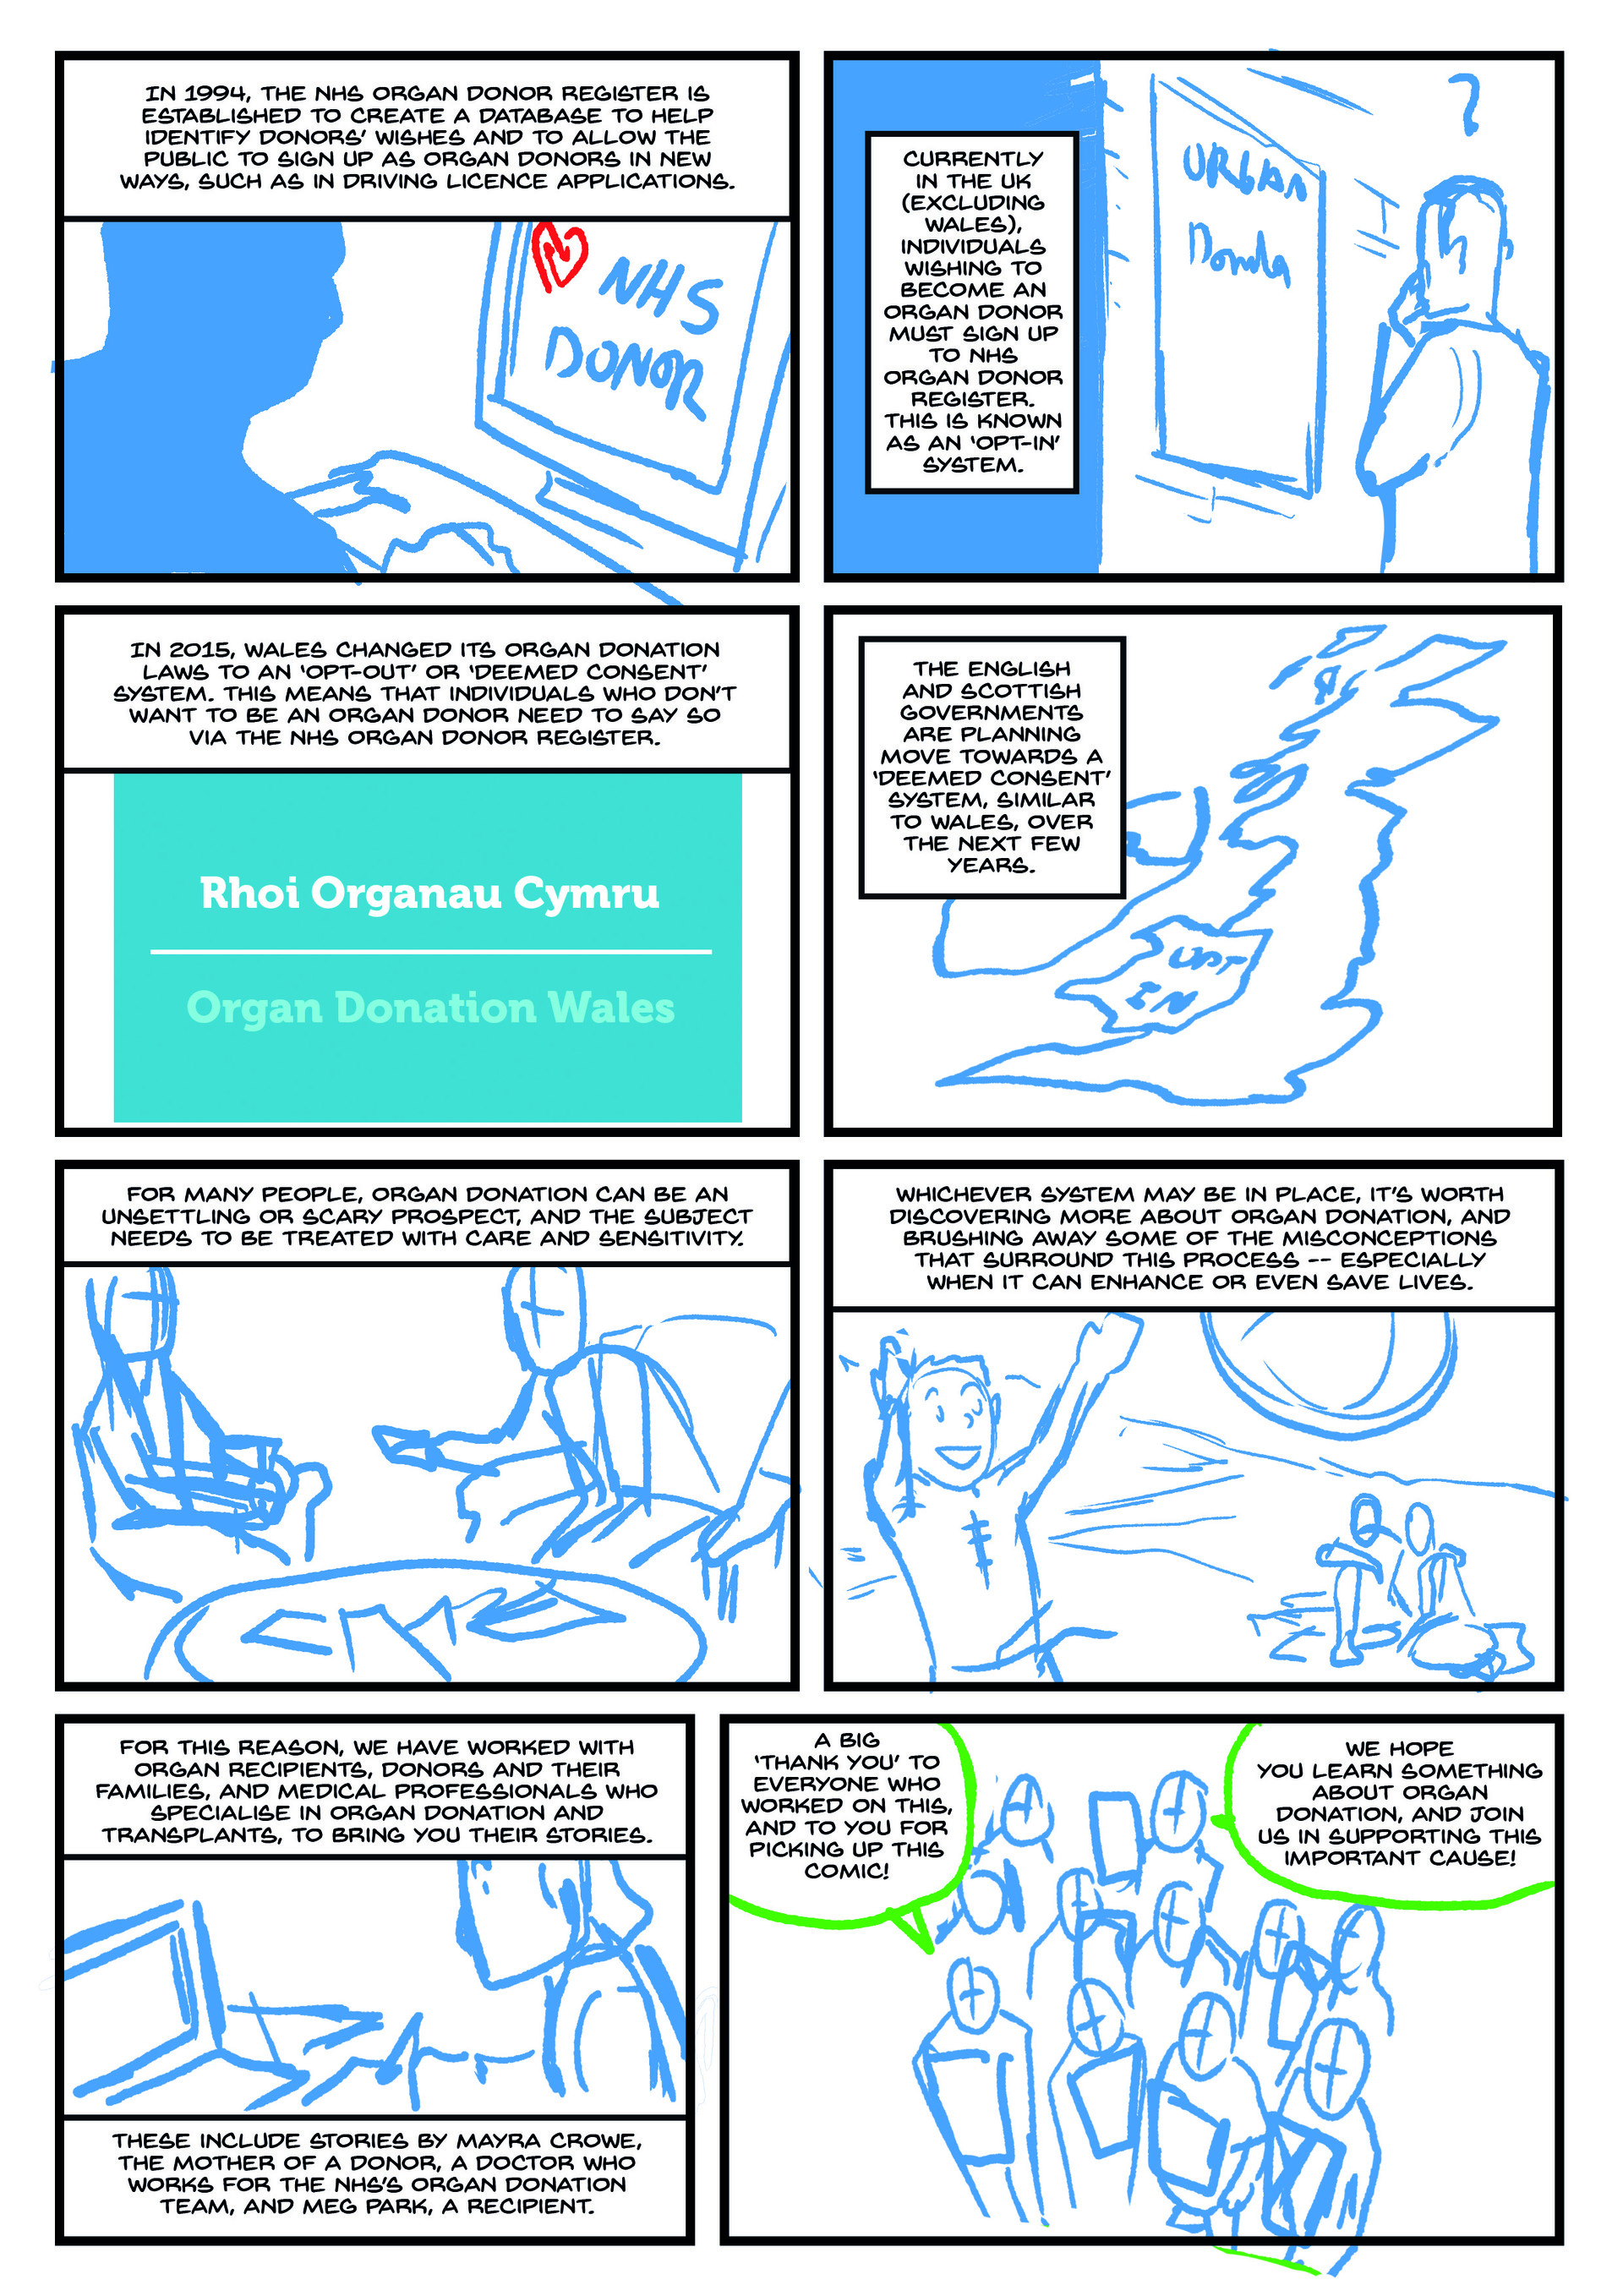 Elliot balson od page 2 ver1